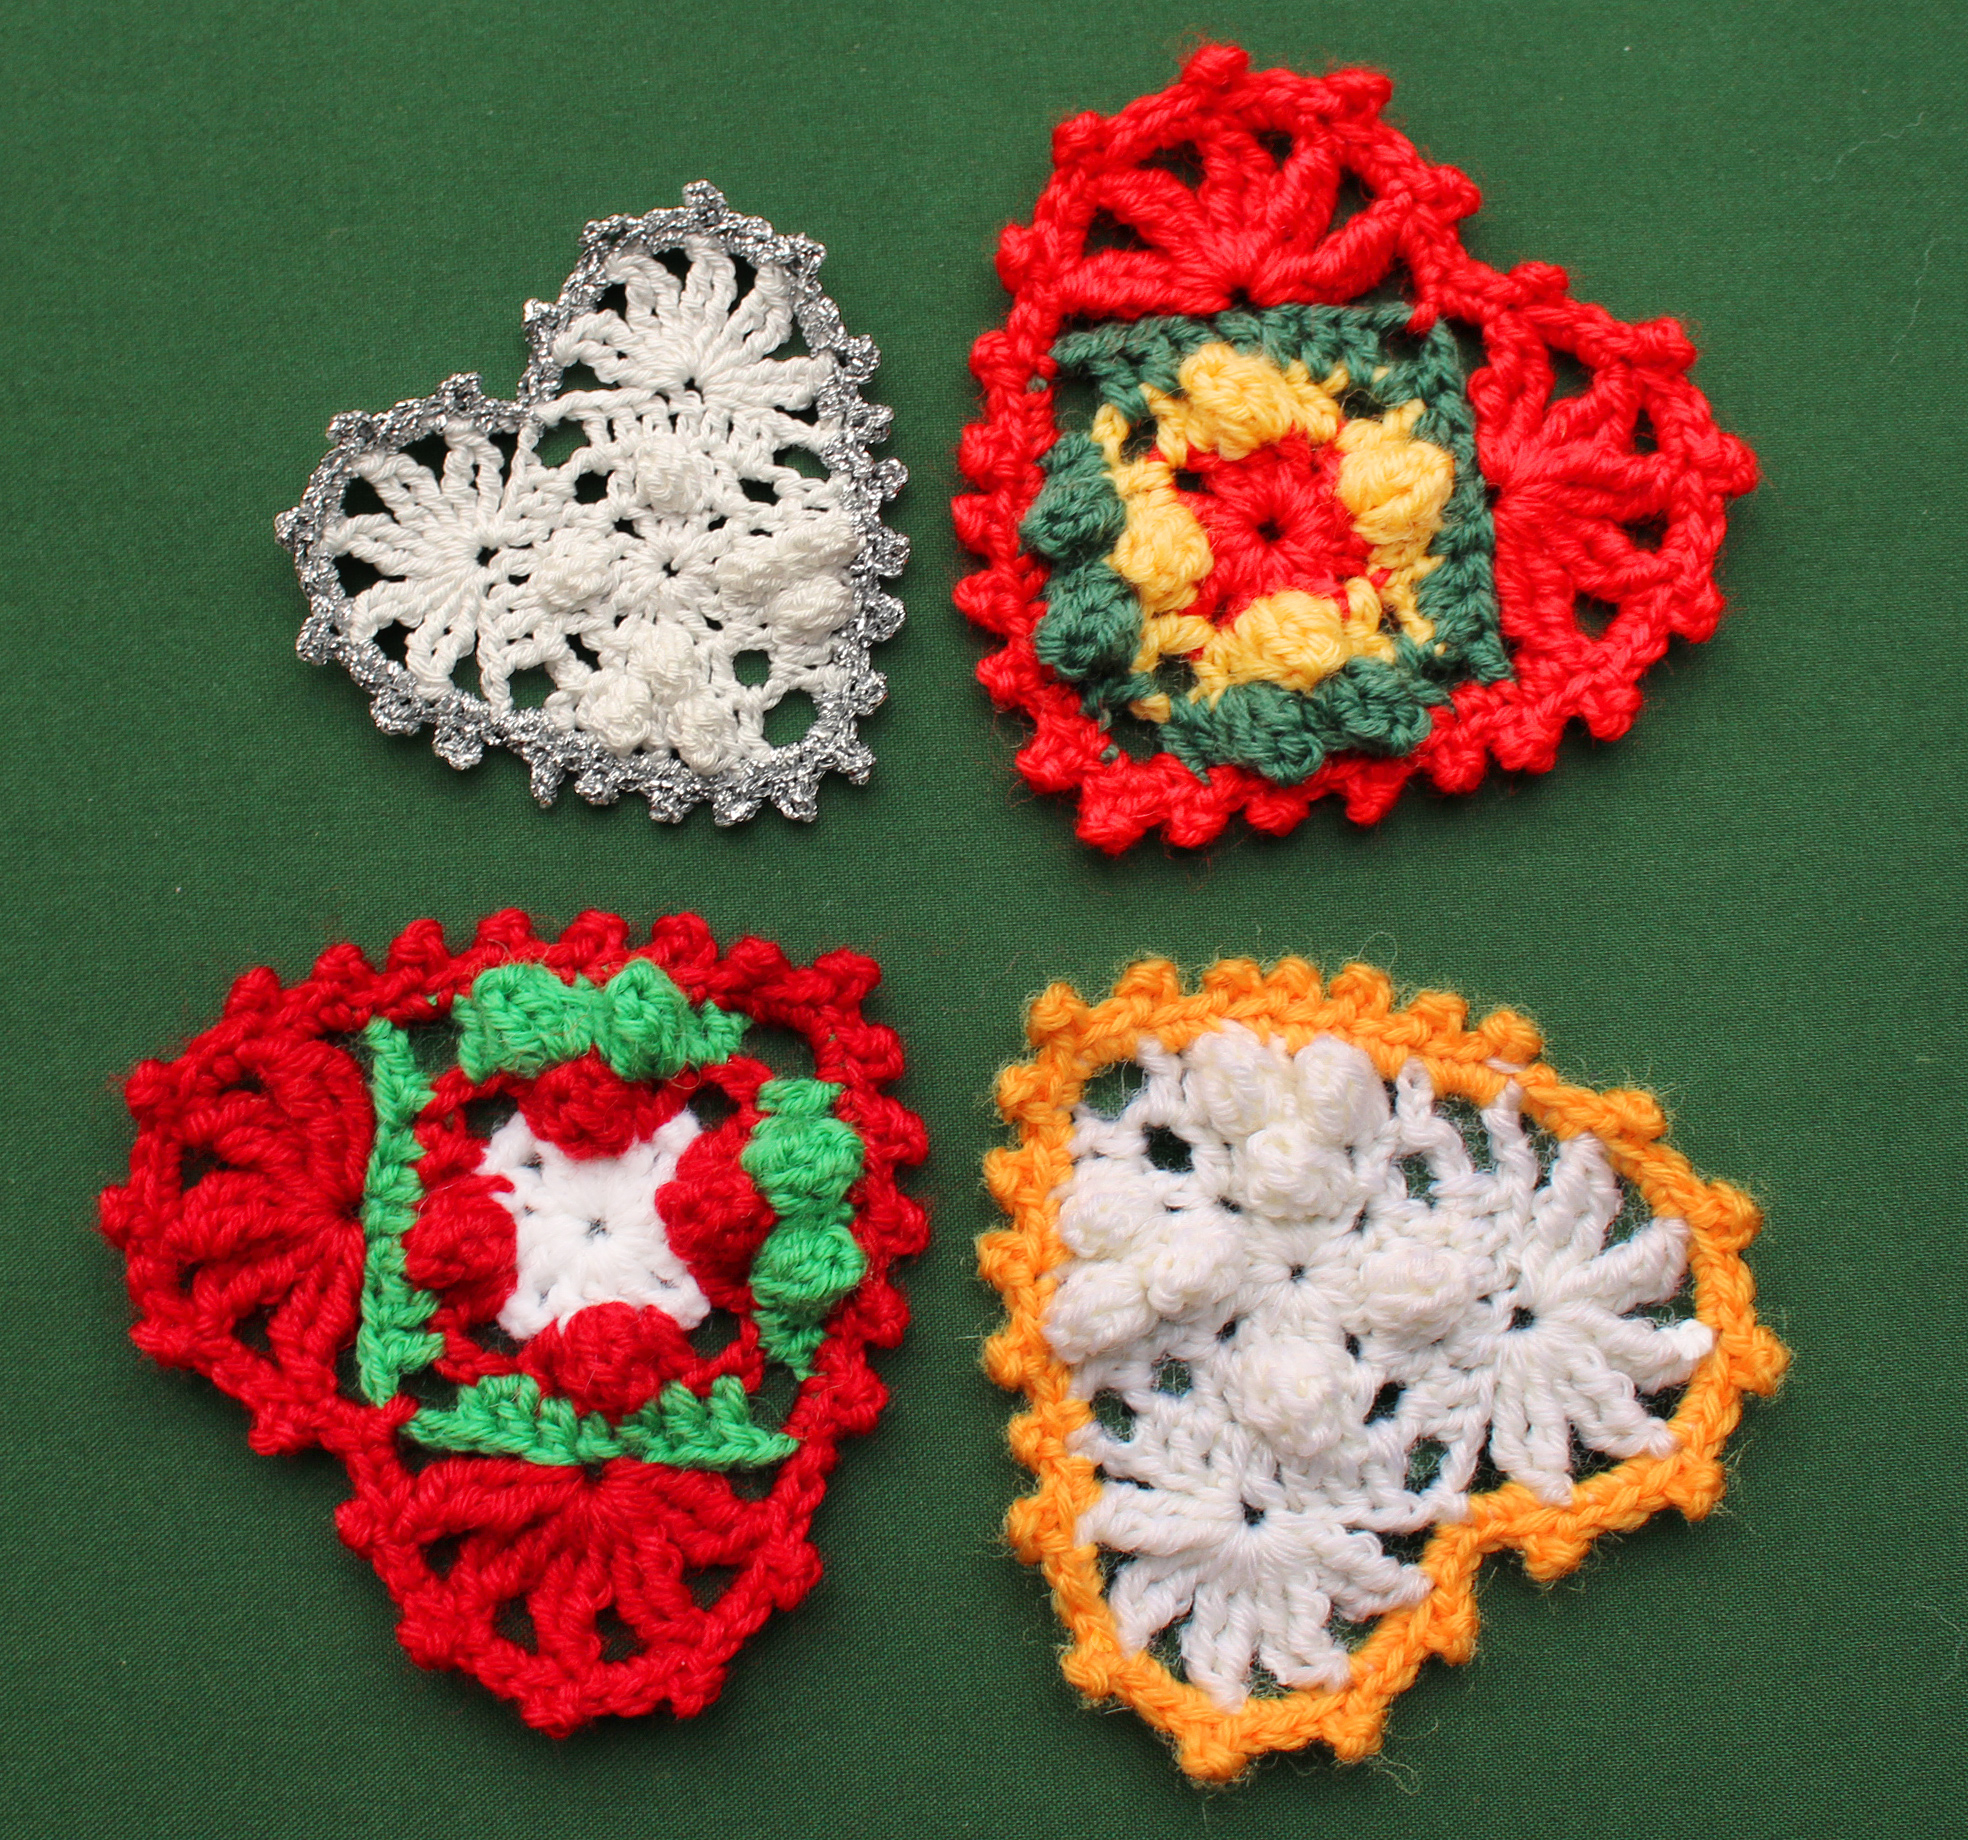 4-crochet-hearts-pattern